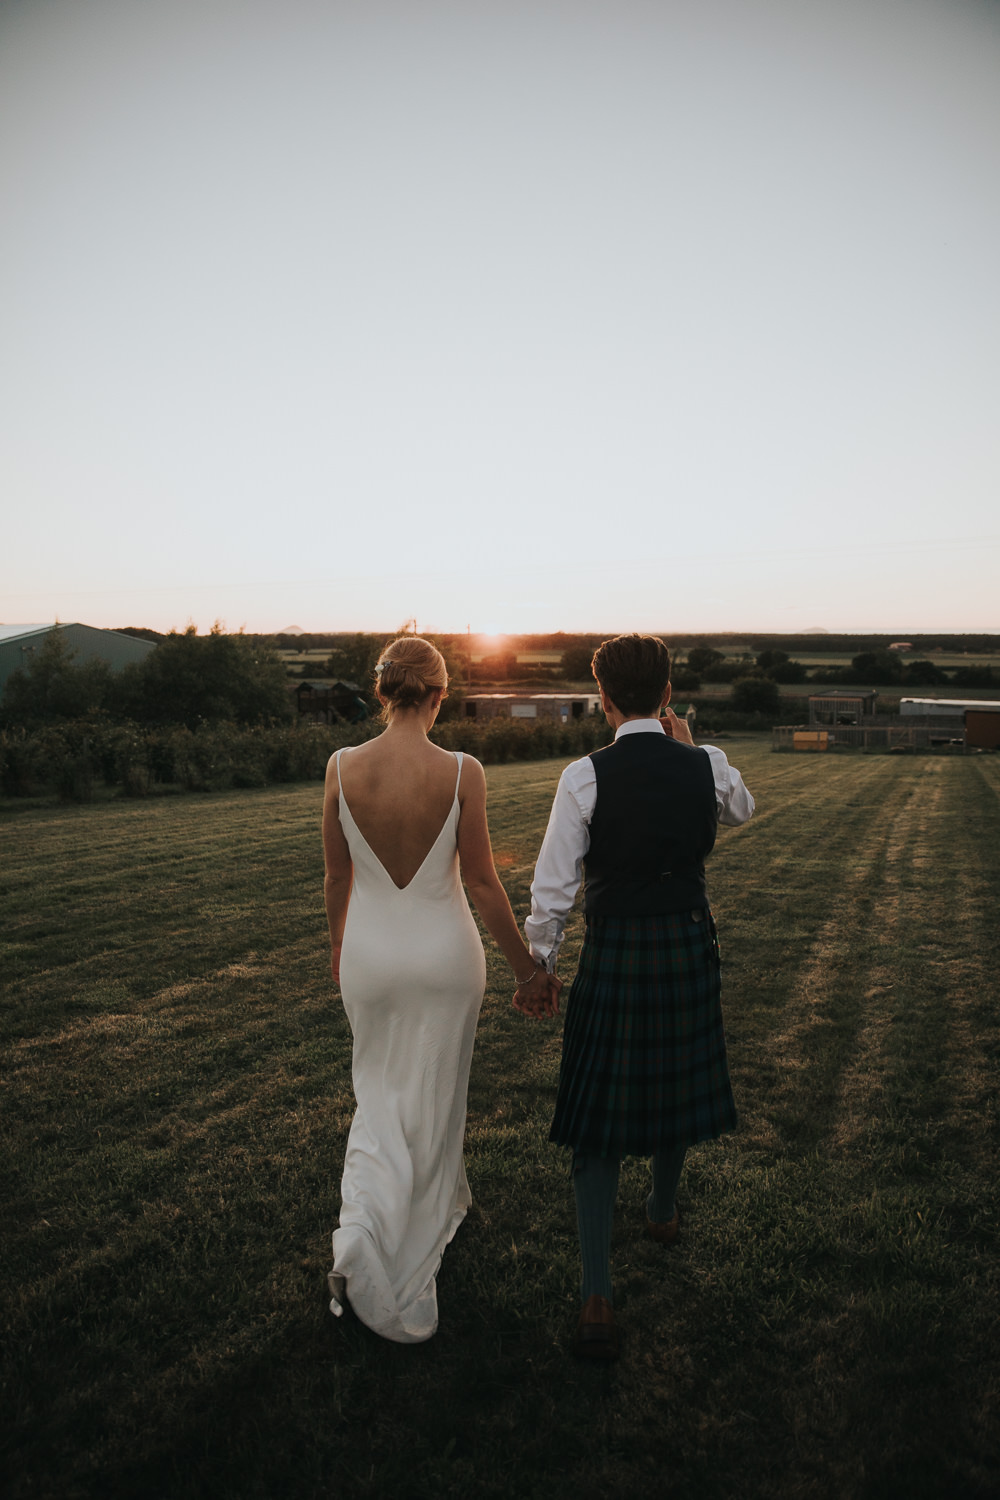 Bride Bridal Fitted Dress Silk Low Back Strappy Kilt Groom Strawberry Barn Wedding Jen Owens Images